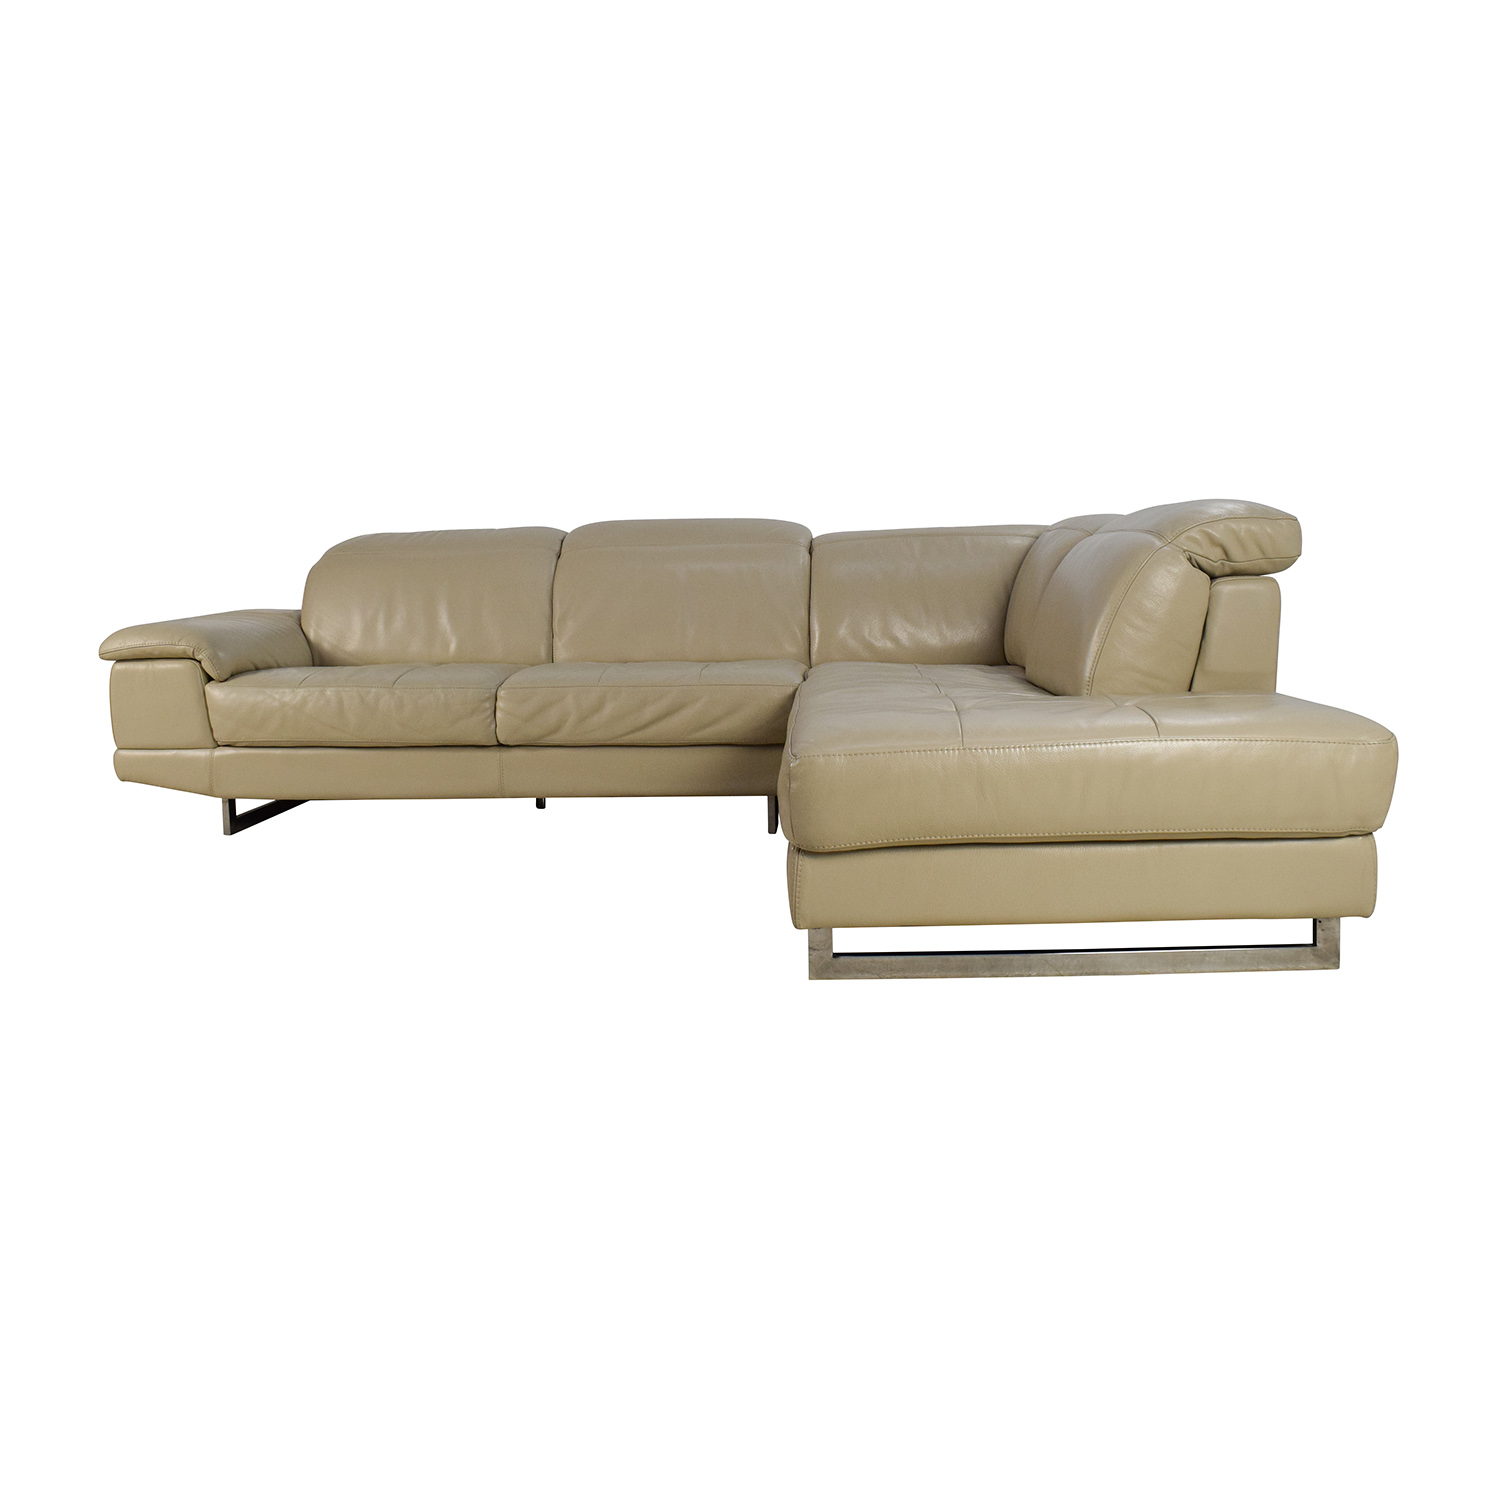 Beige Italian Leather Couch with Adjustable Headrests discount